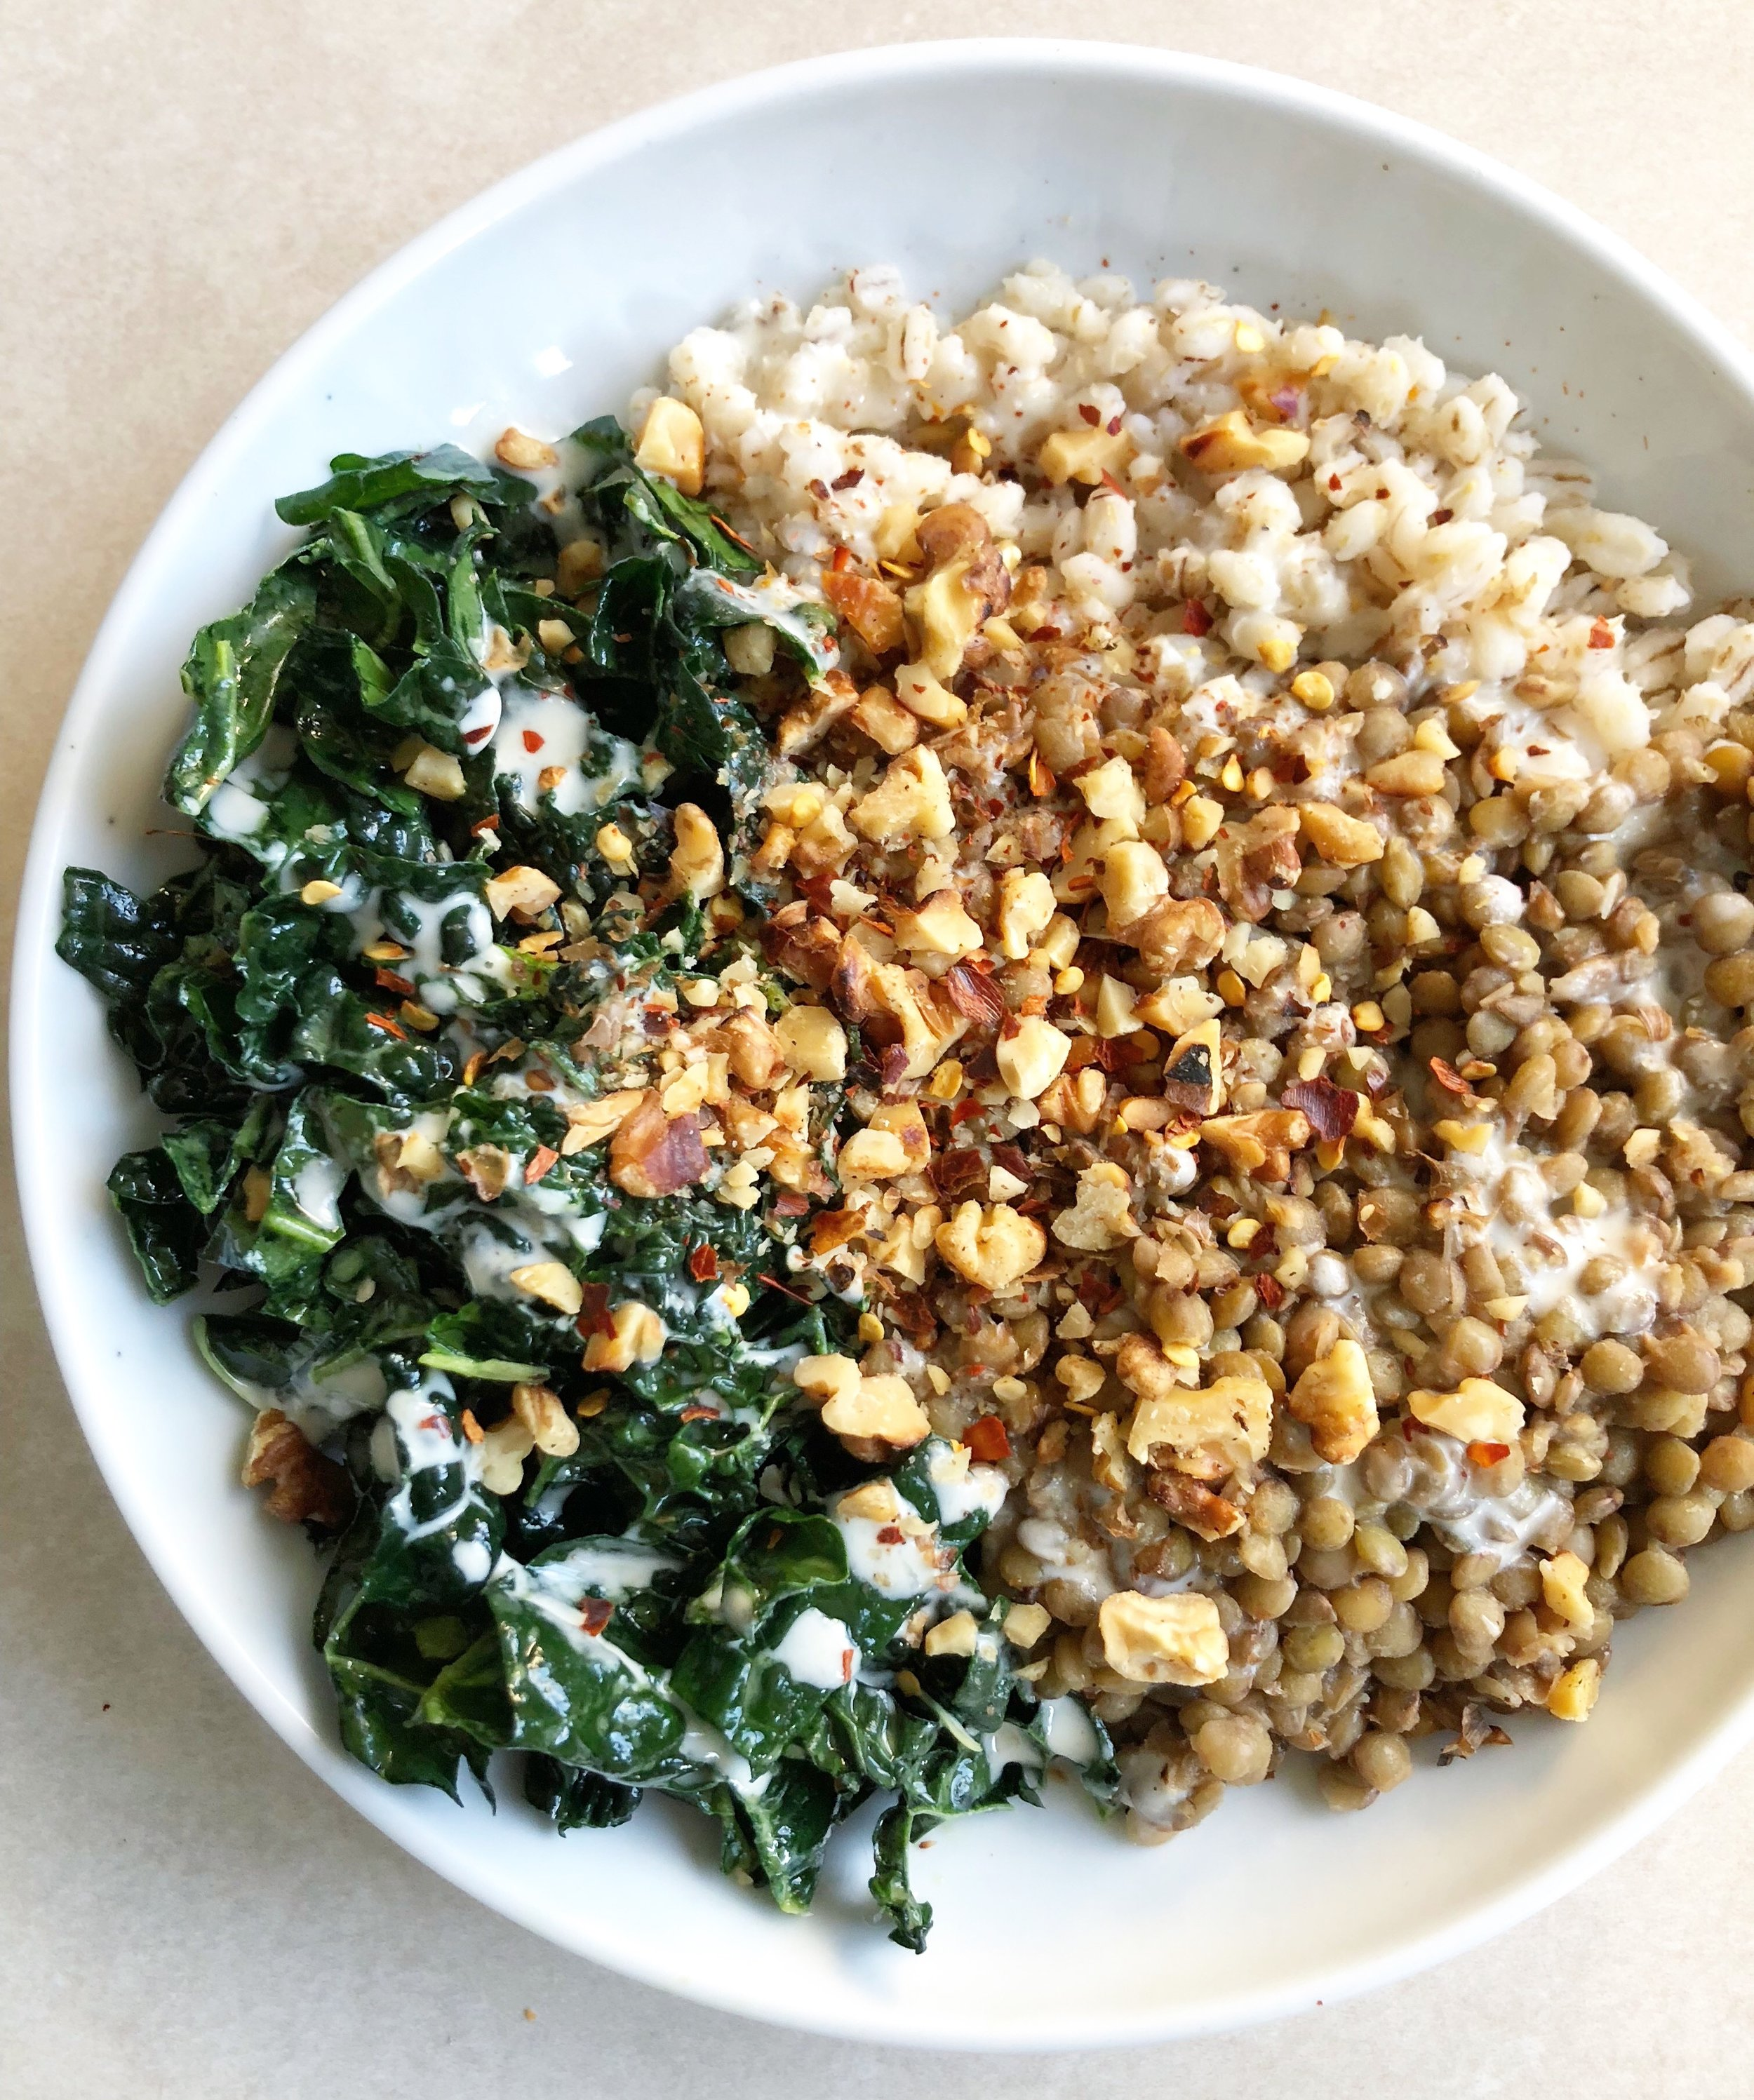 French lentils in garlicky red wine vinaigrette, with barley, kale salad, toasted walnuts, tahini-lemon sauce, chilli flakes, S&P.